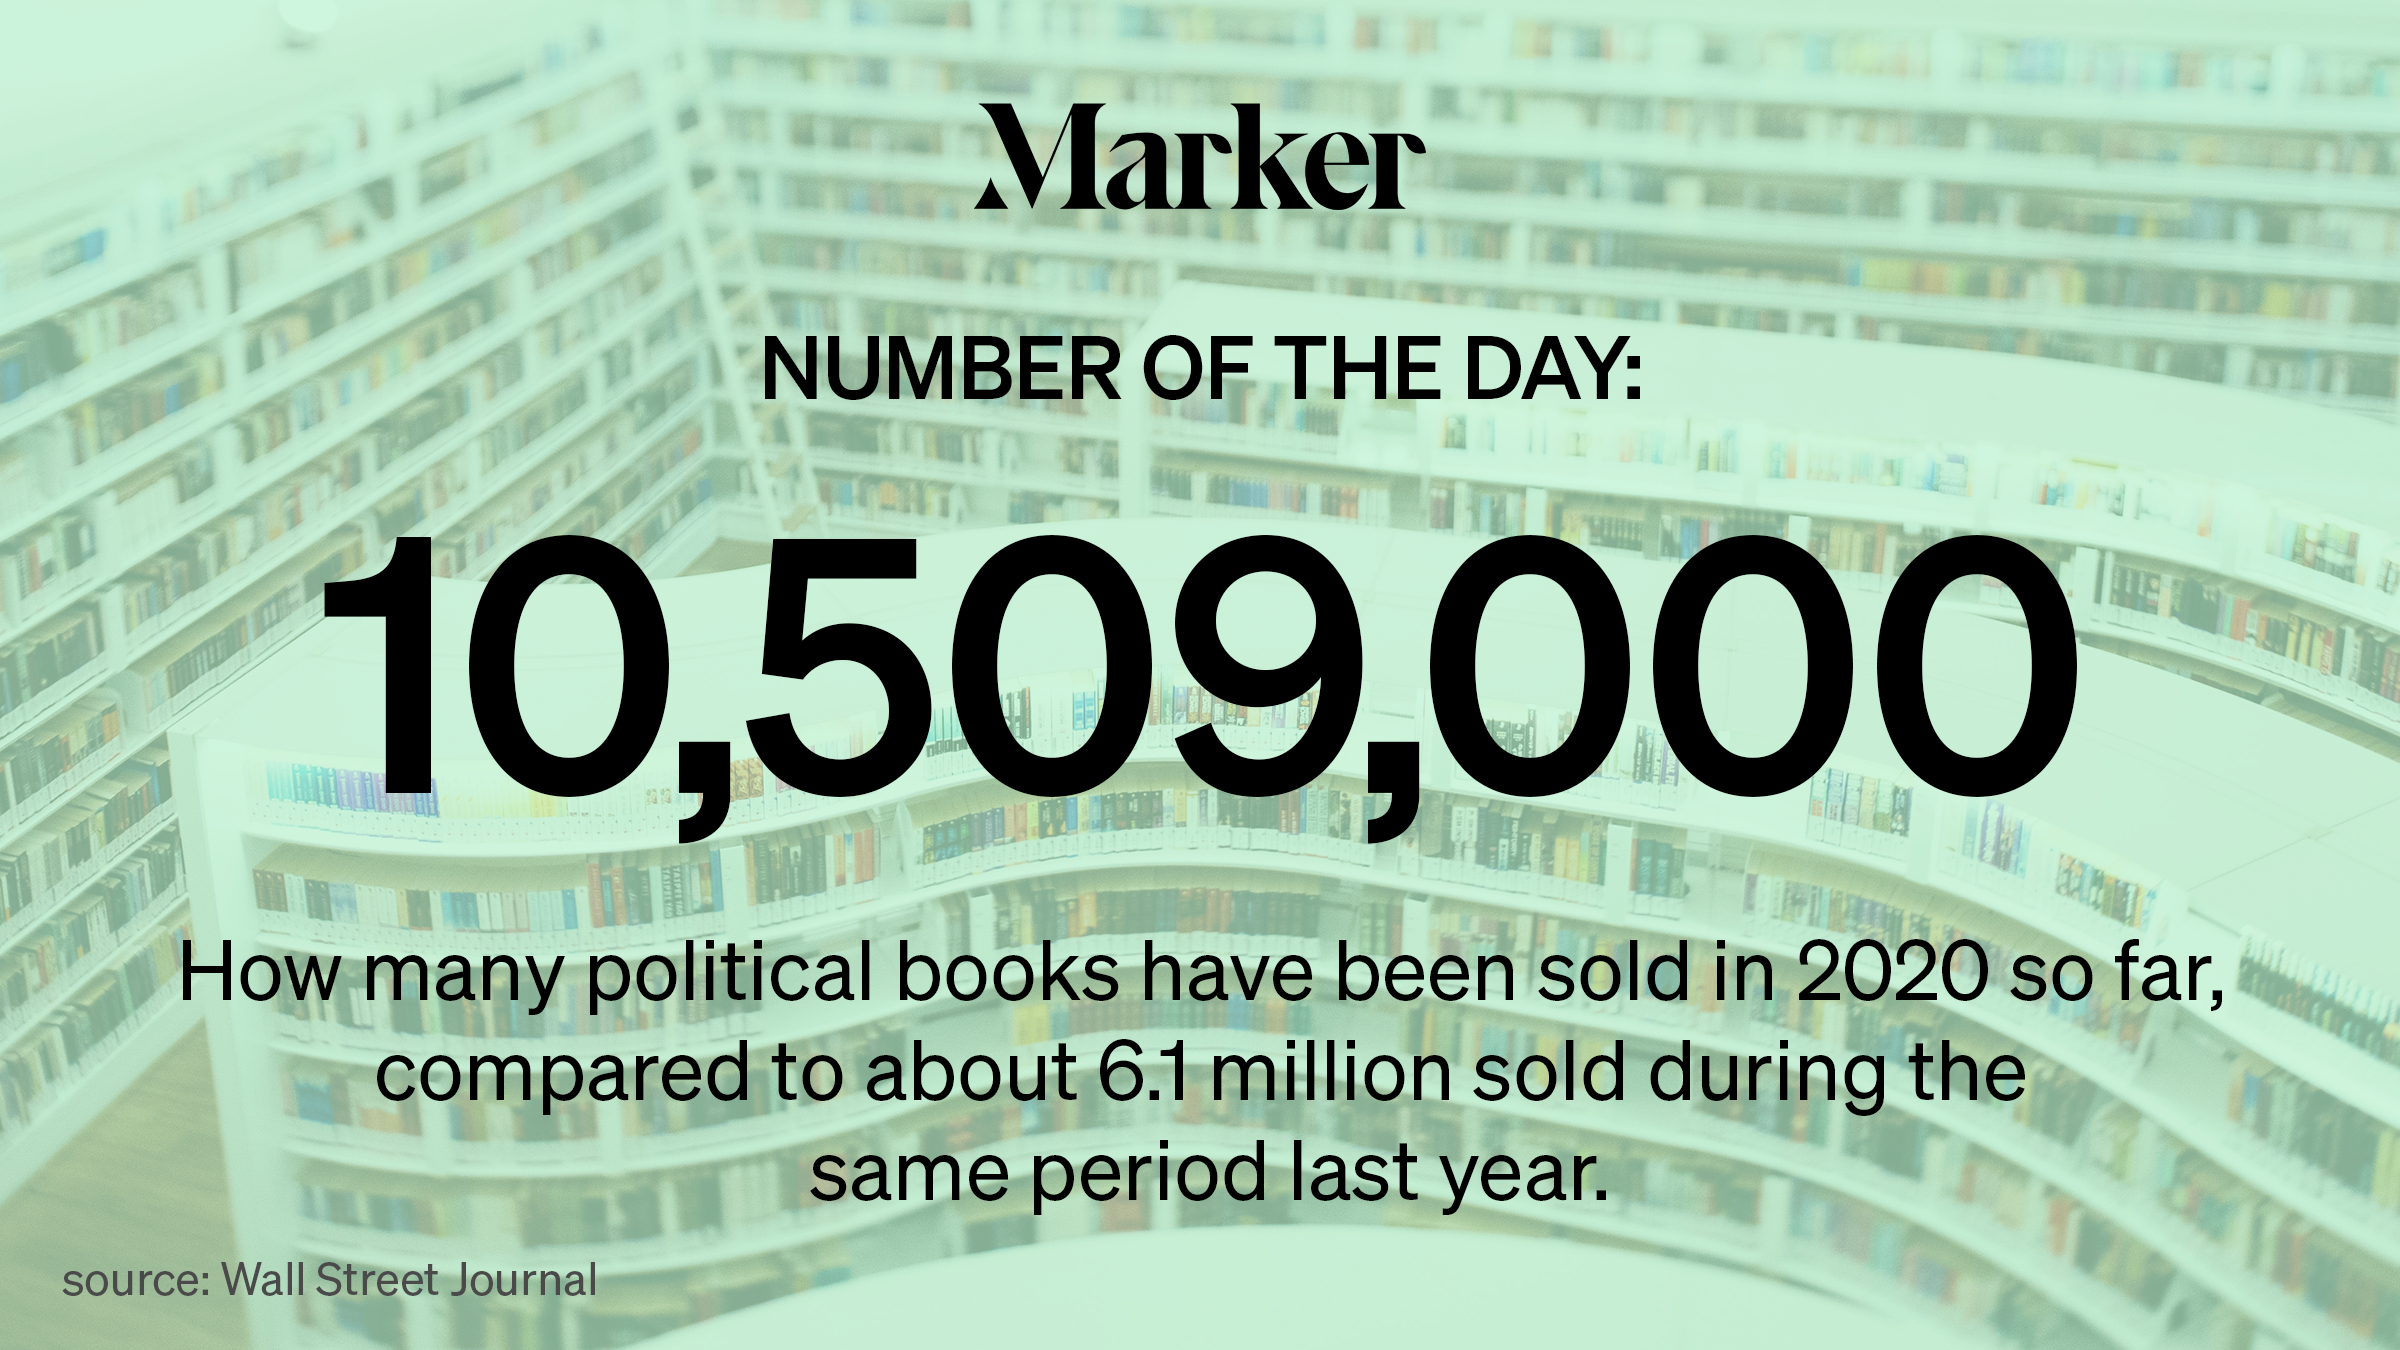 10.5 Million How many political books were sold in 2020 so far, compared to 6.1 million sold during the same period last year